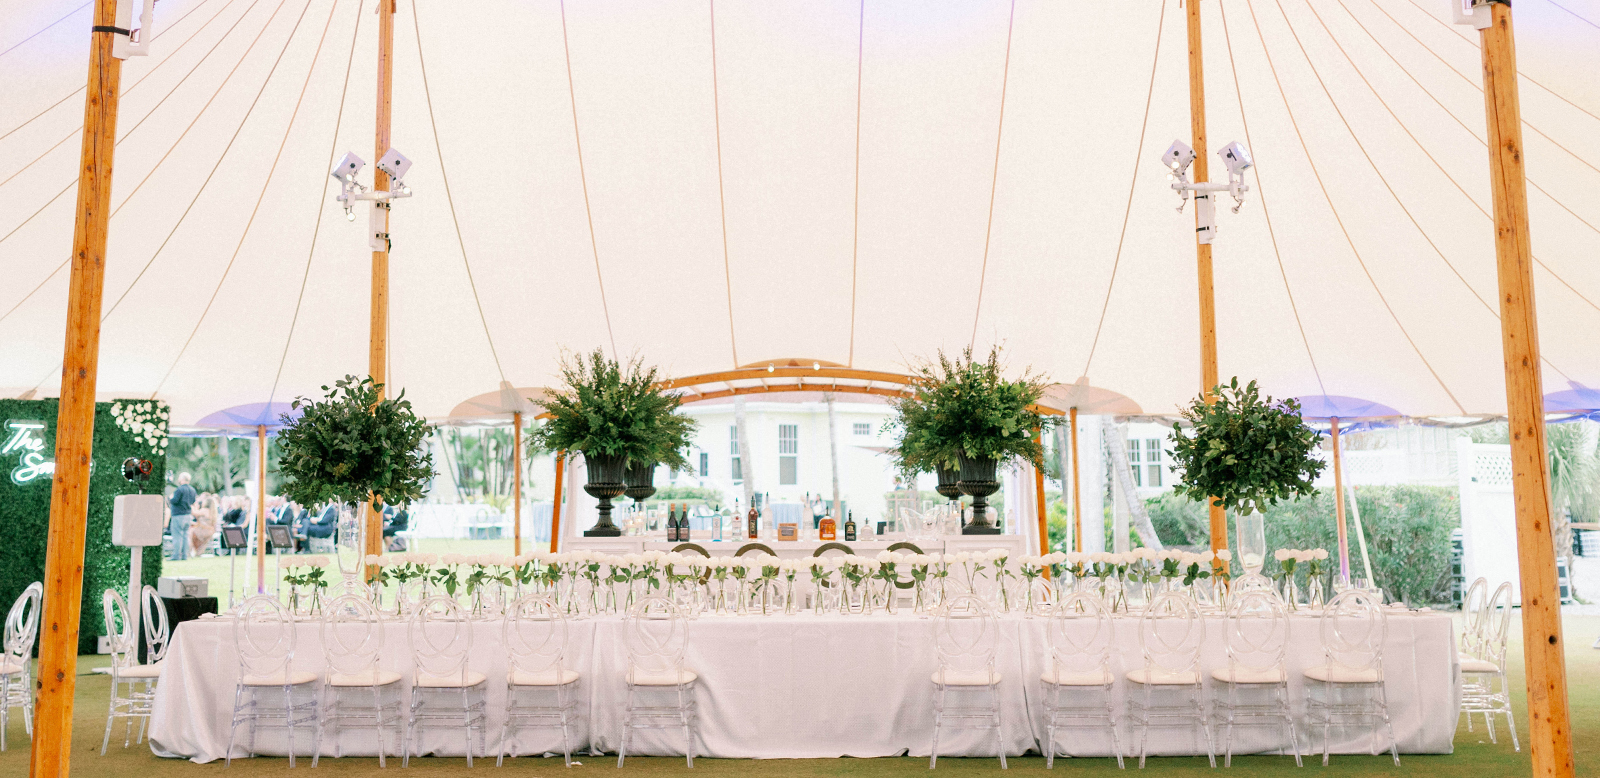 Weddings & Events by Valley Forge Flowers8